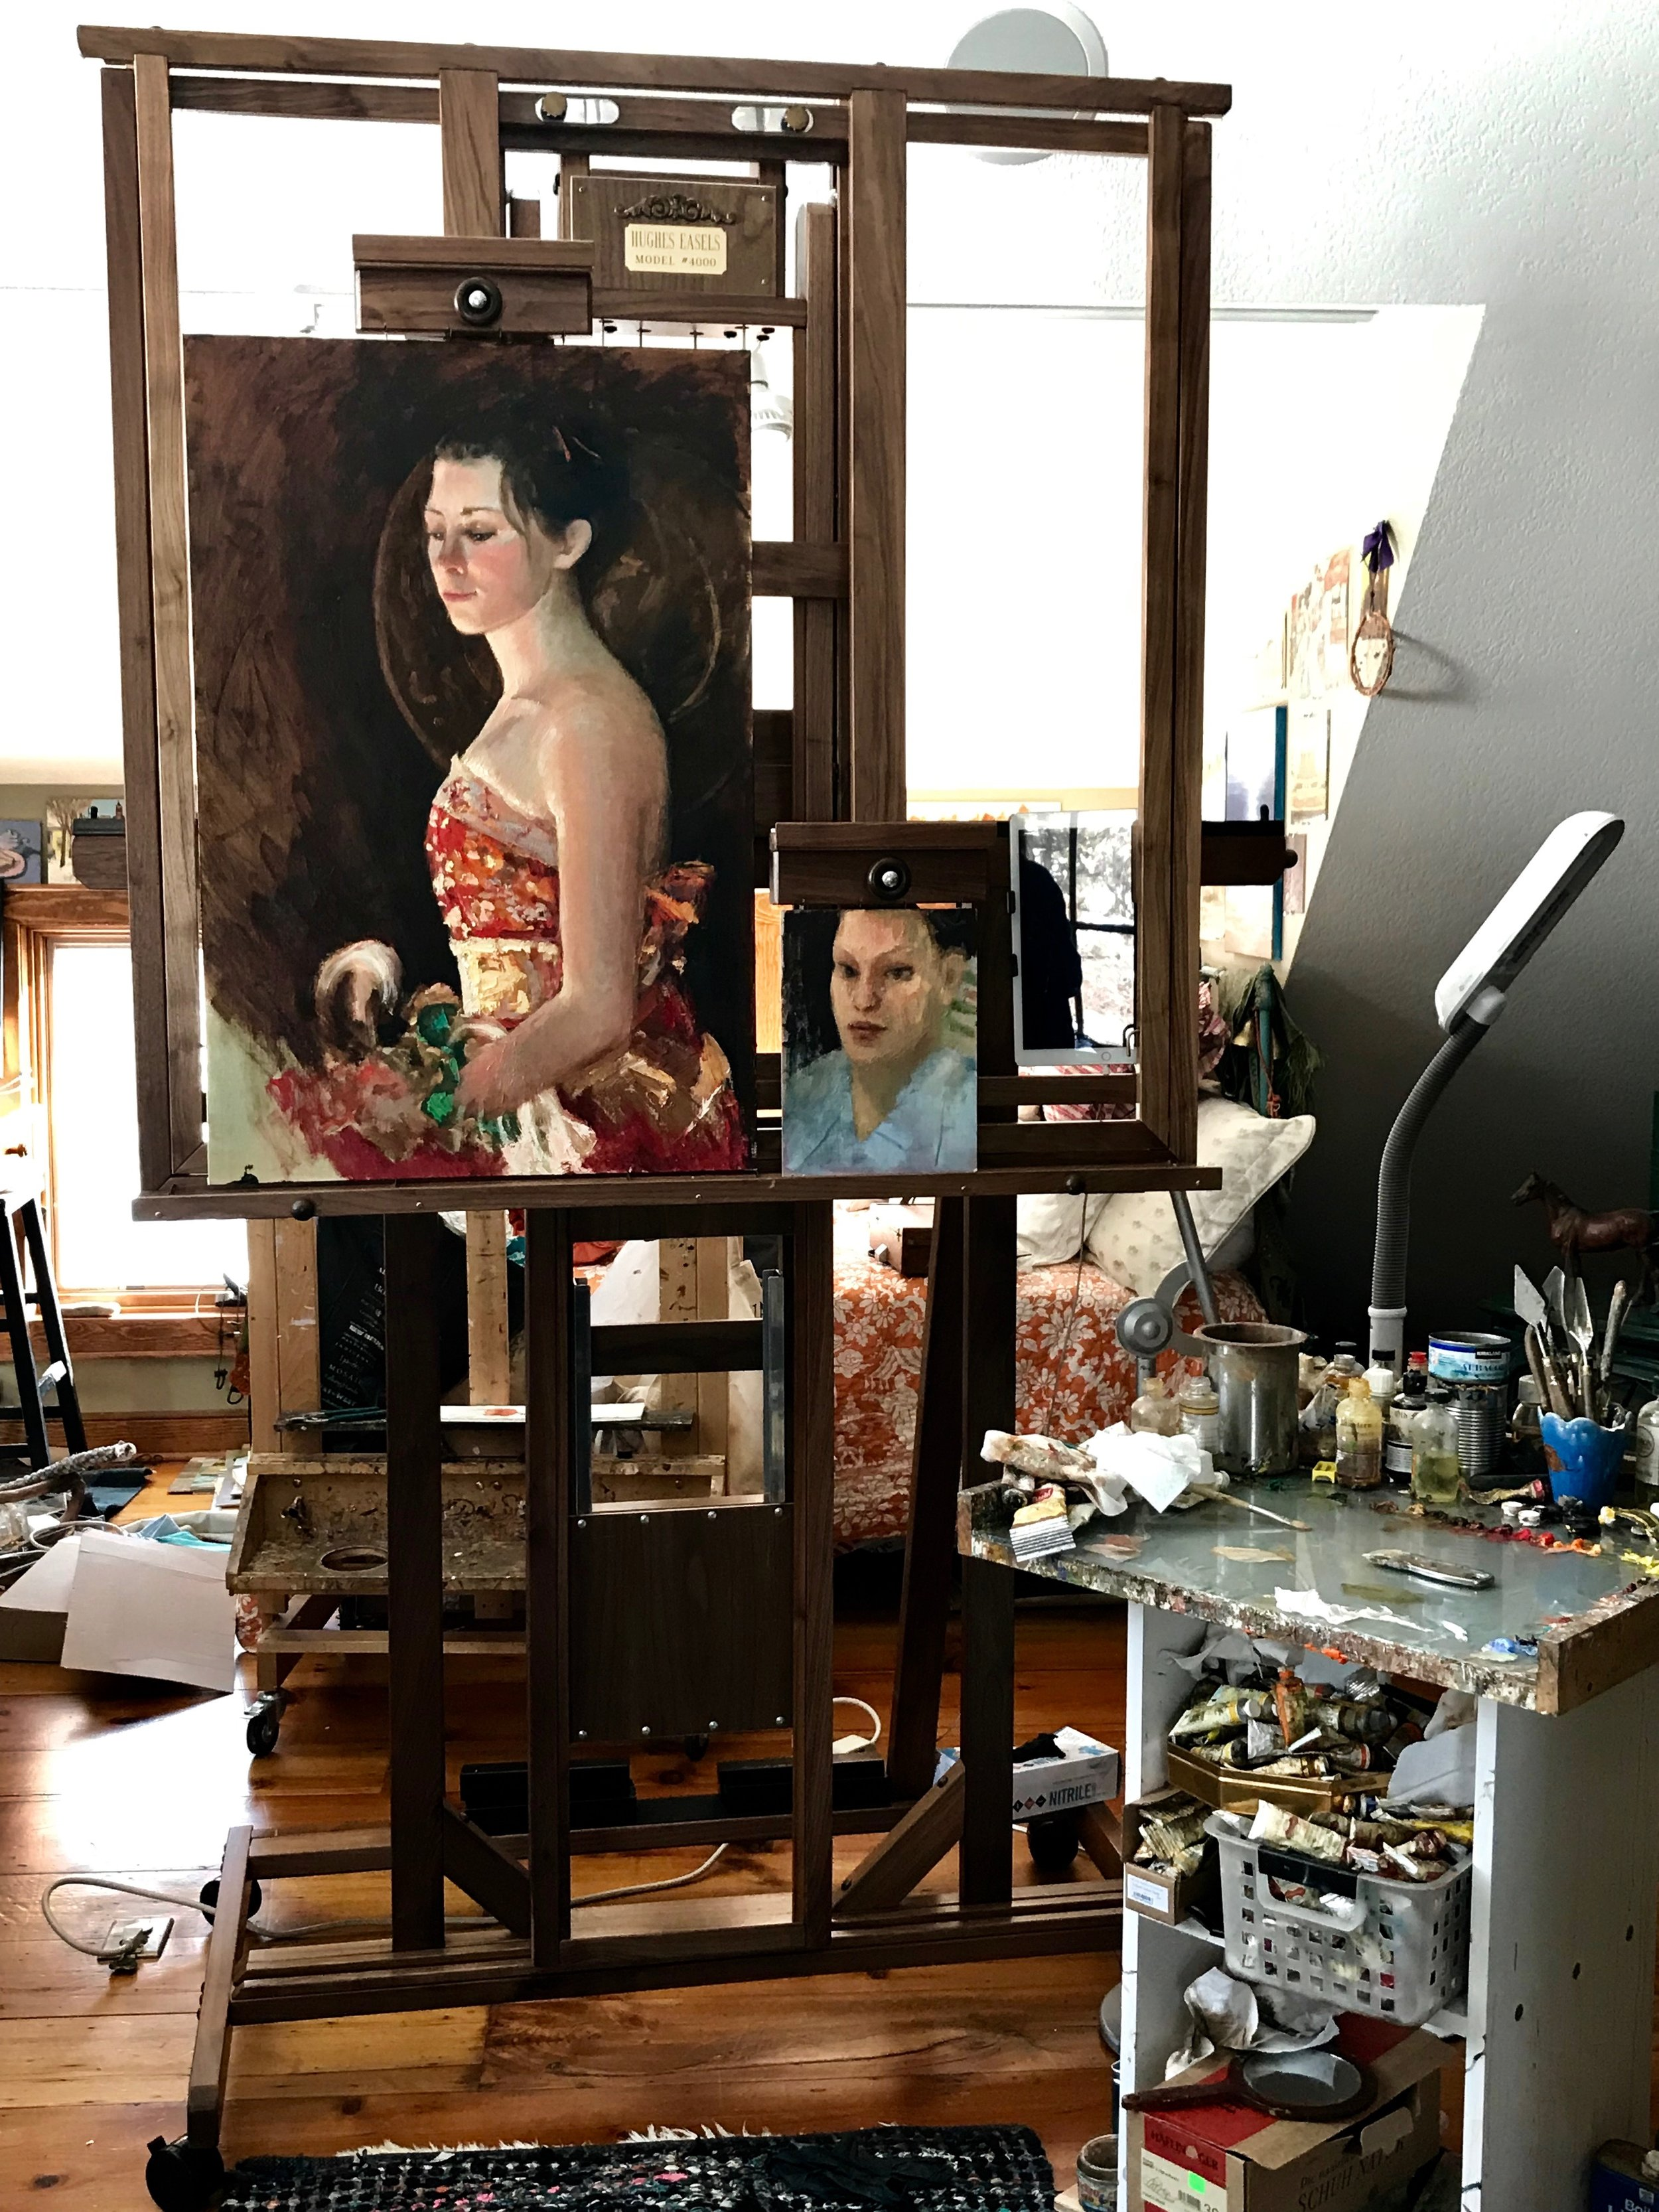 - My new Huges Easel in a messy studio!Next week is the job of cleaning and organizing the studio!